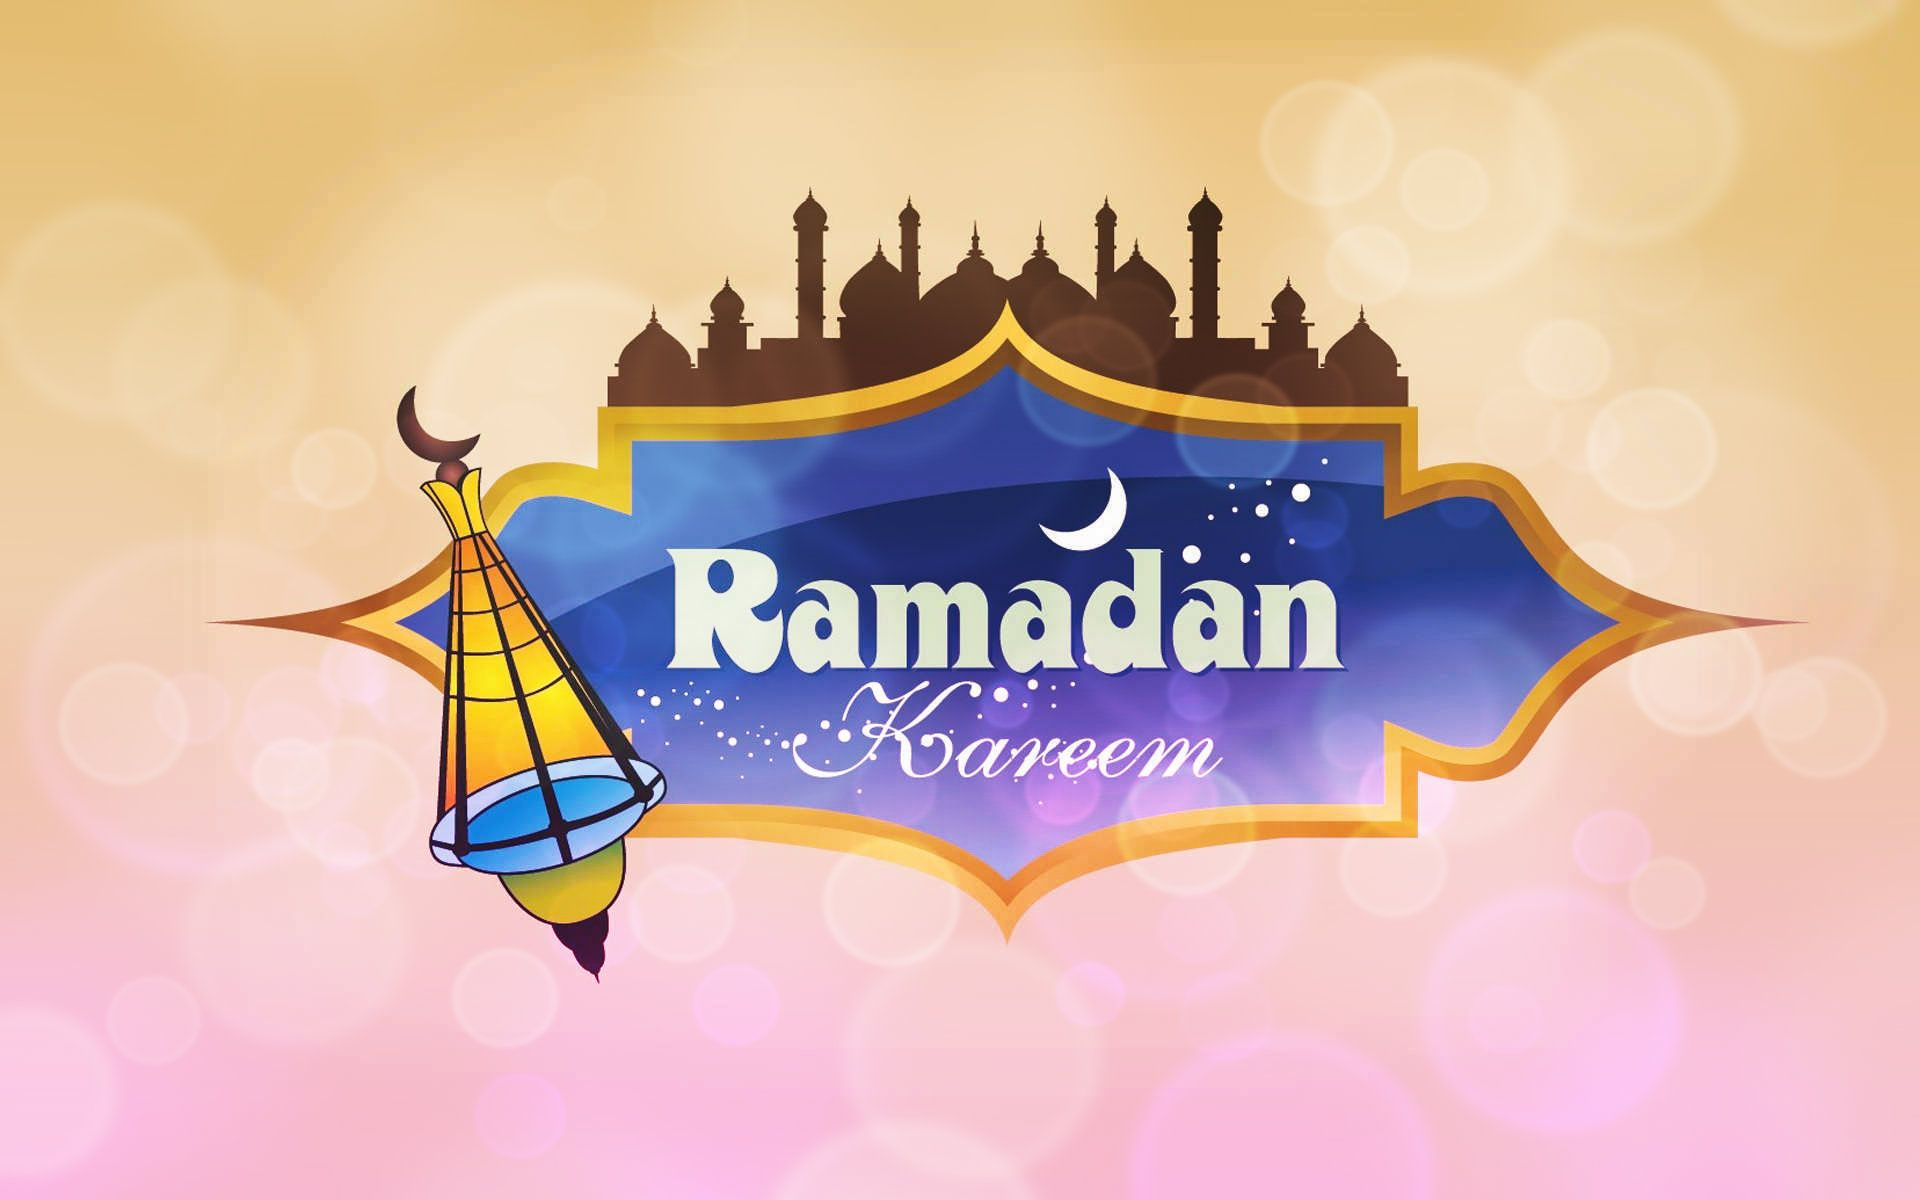 Free download Ramadan Kareem Pictures HD Wallpapers Image Pictures [1920x1200] for your Desktop, Mobile & Tablet